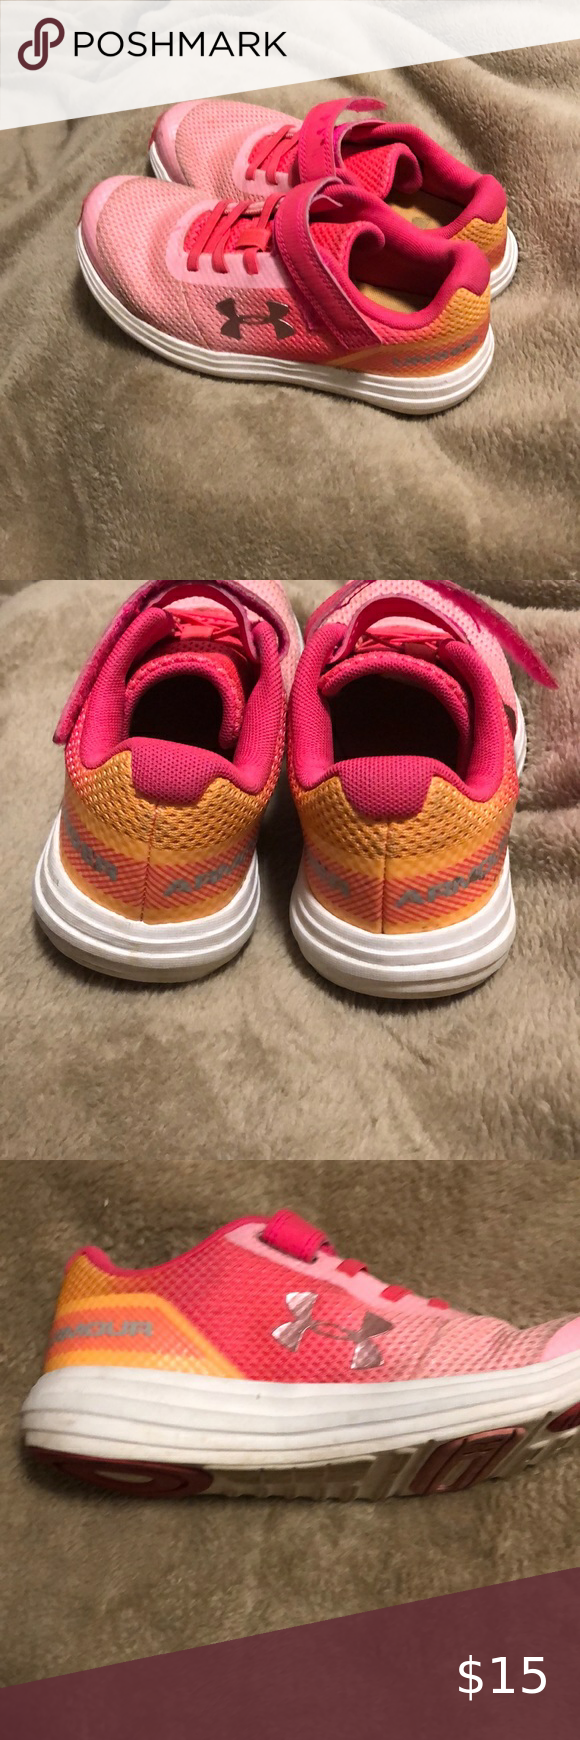 Girls under Armour pink tennis shoes